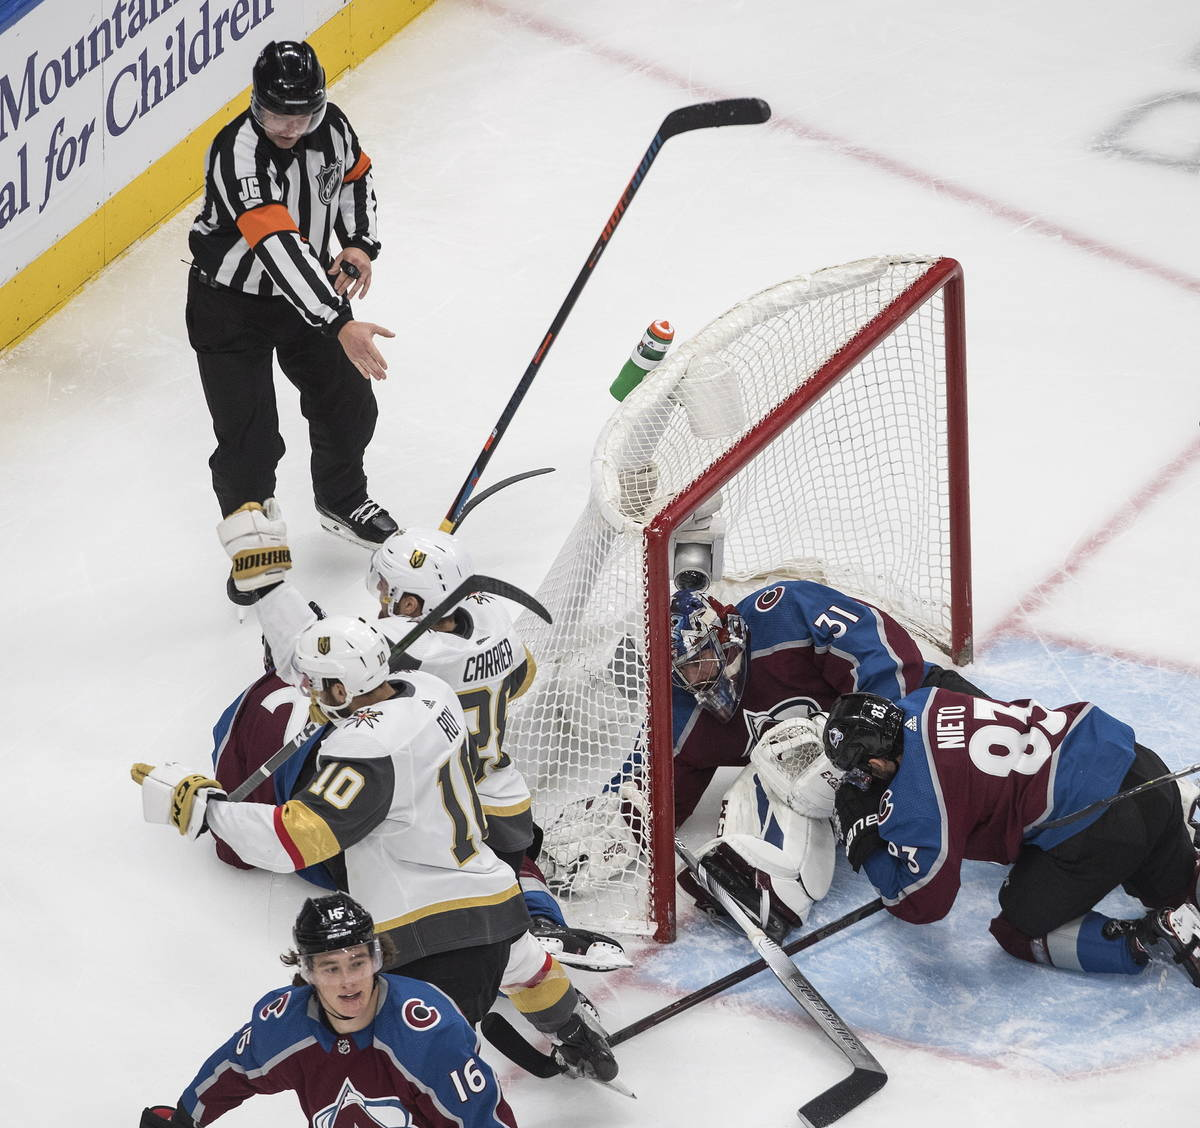 The referee points to a goal by the Vegas Golden Knights during second period NHL Stanley Cup h ...